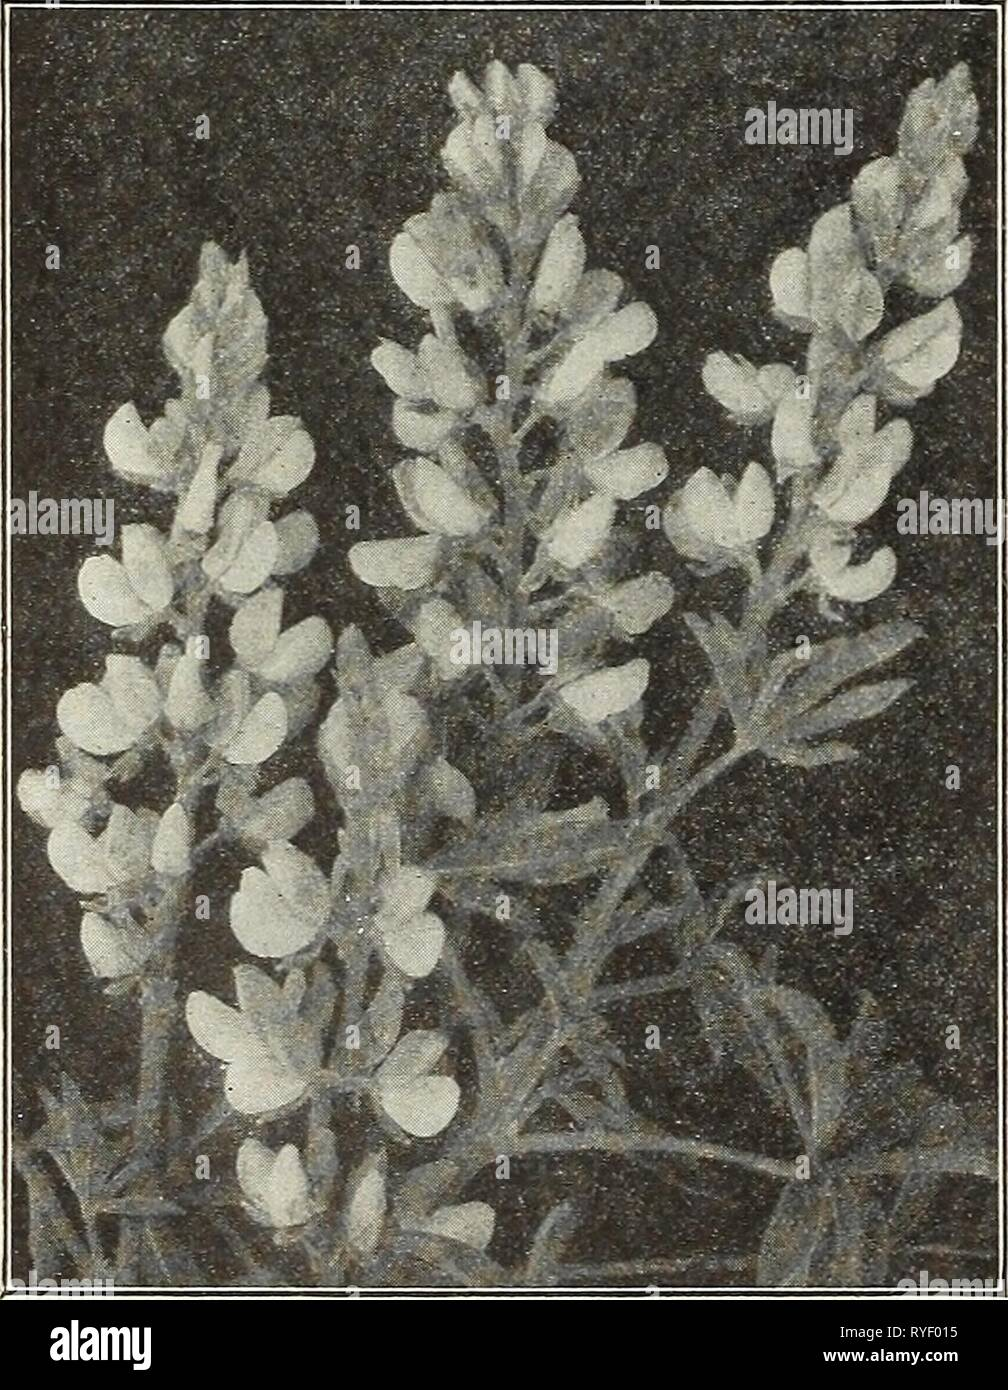 Dreer's wholesale price list for florists : flower seeds lawn grass seeds bulbs plants sundries  dreerswholesalep1931henr Year: 1931  HENRY A. DREER Flower Seeds WHOLESALE LIST Fern Spores We can furnish spores of our own saving of the following- splendid varieties. Adlantnm Cnneatom Pterls Serrnlata Serrulata Cristata Tremnla 'VictorEe Wilsoni, $1.00 W-imsetti Wimsetti Mnltlceps Aspidinni Tsnssimense CjTtomlnm Rochfordlannm Compactnm Pteris Adiantoldes ' Cretlca Albo Lineata ' Ma^nifica ' Maj-ii Price. Any of the above Fern Spores, except Pteris Wilsoni, 50 cents per trade packet. General Mix - Stock Image